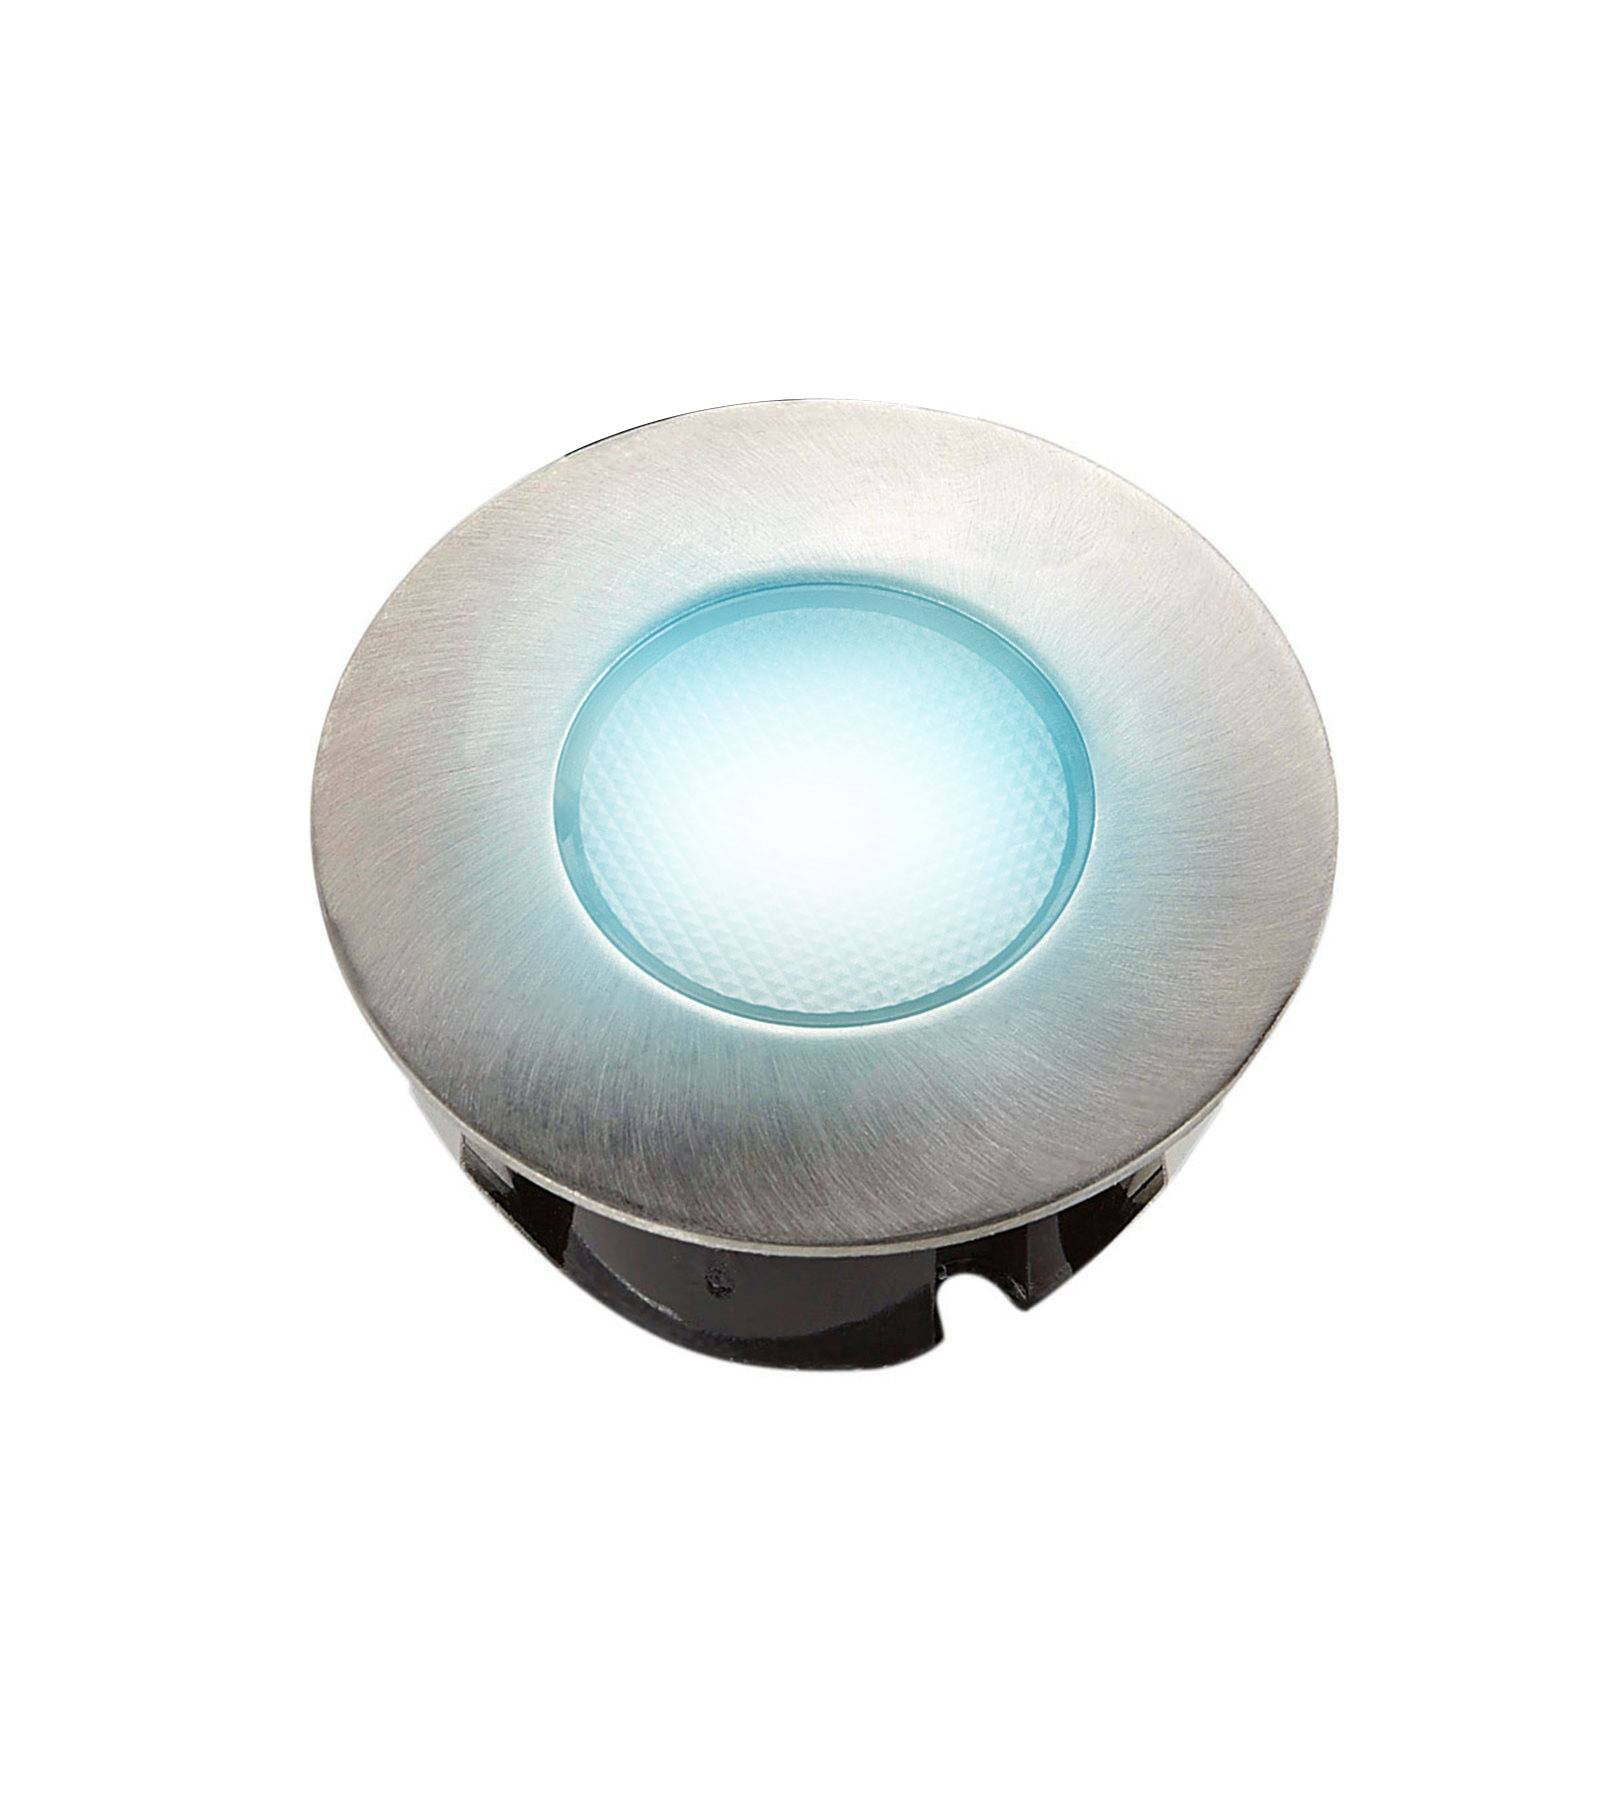 Easy Connect Mini Spot encastrable rond 7.5cm Inox Mini DECK Light 2W LED integrés IP67 Bleu extérieur EASY CONNECT - 65431